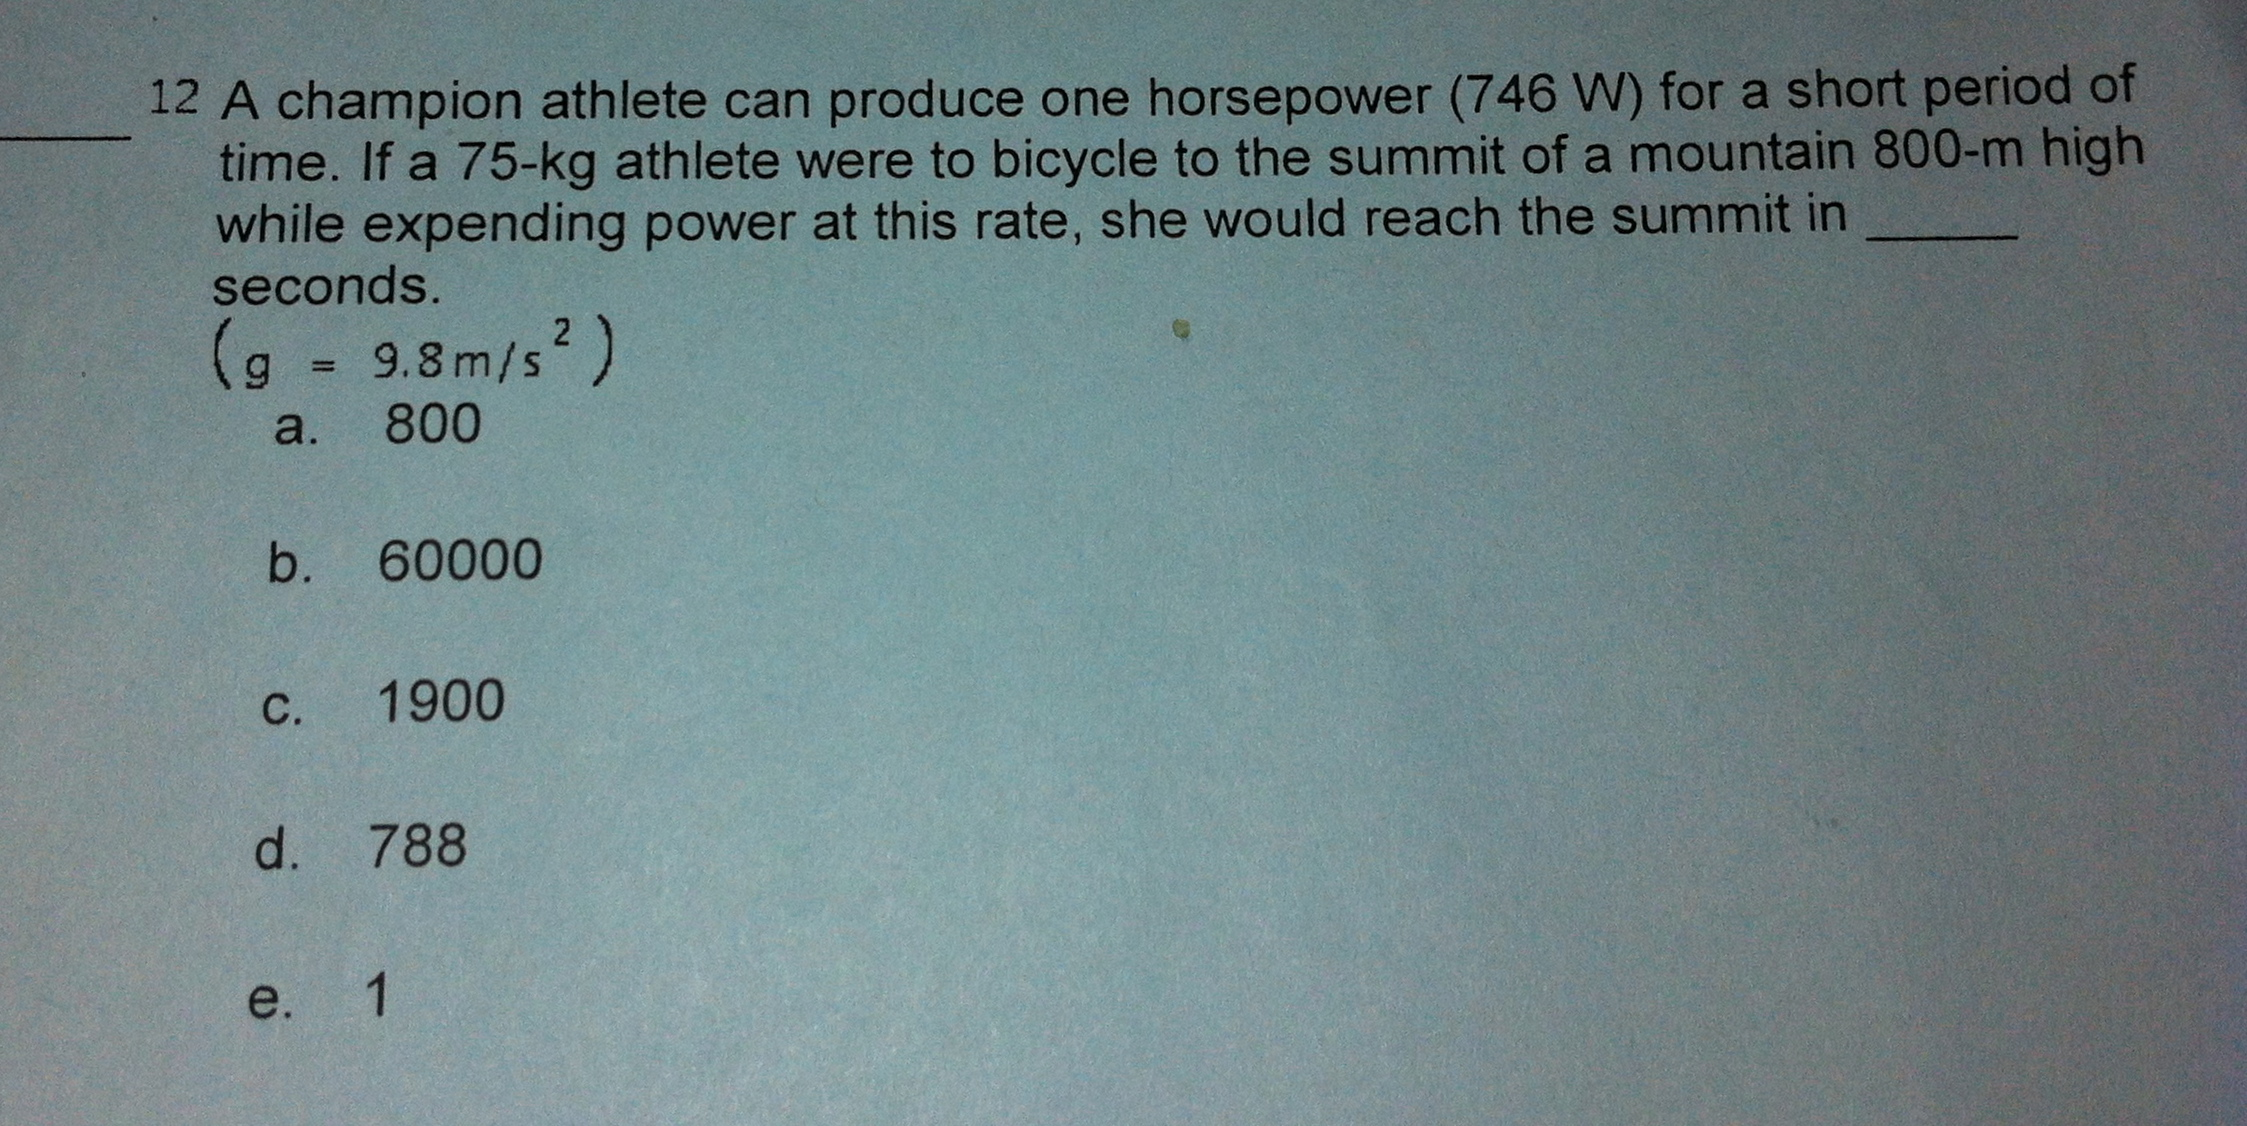 A champion athlete can produce one horsepower (746